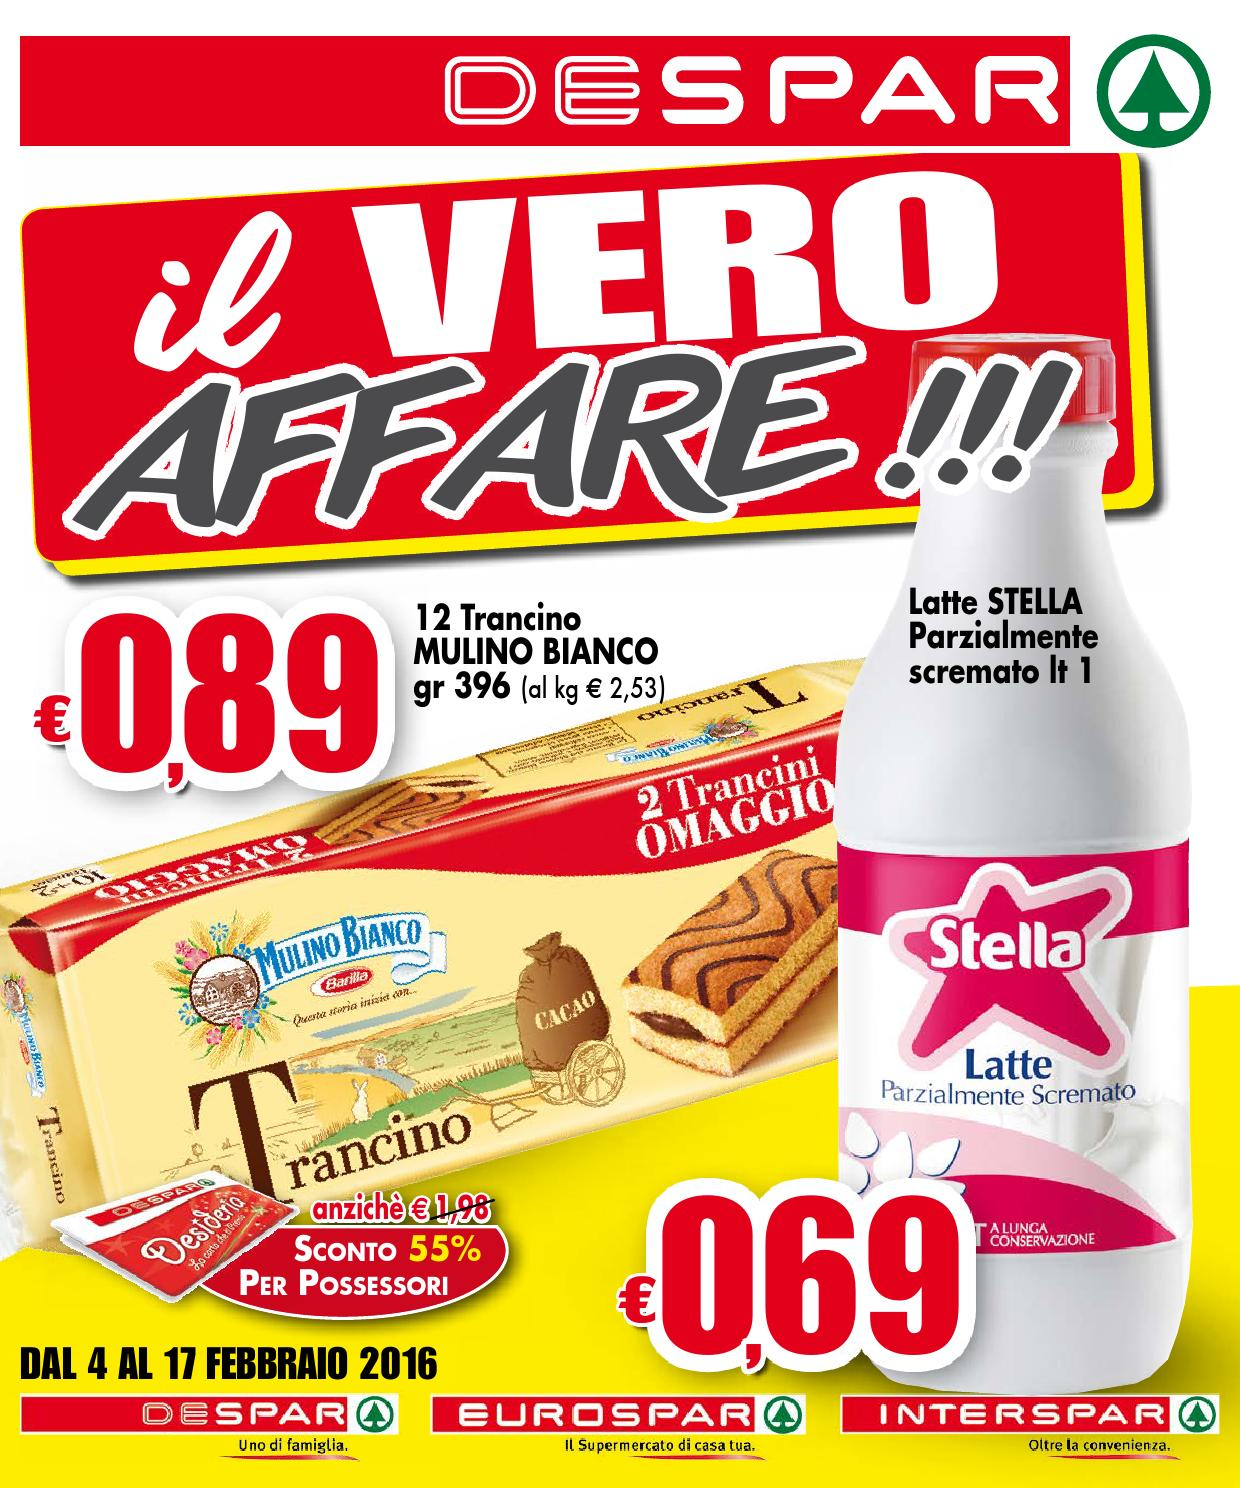 Volantino despar eurospar interspar dal 4 al 17 for Volantino despar messina e provincia